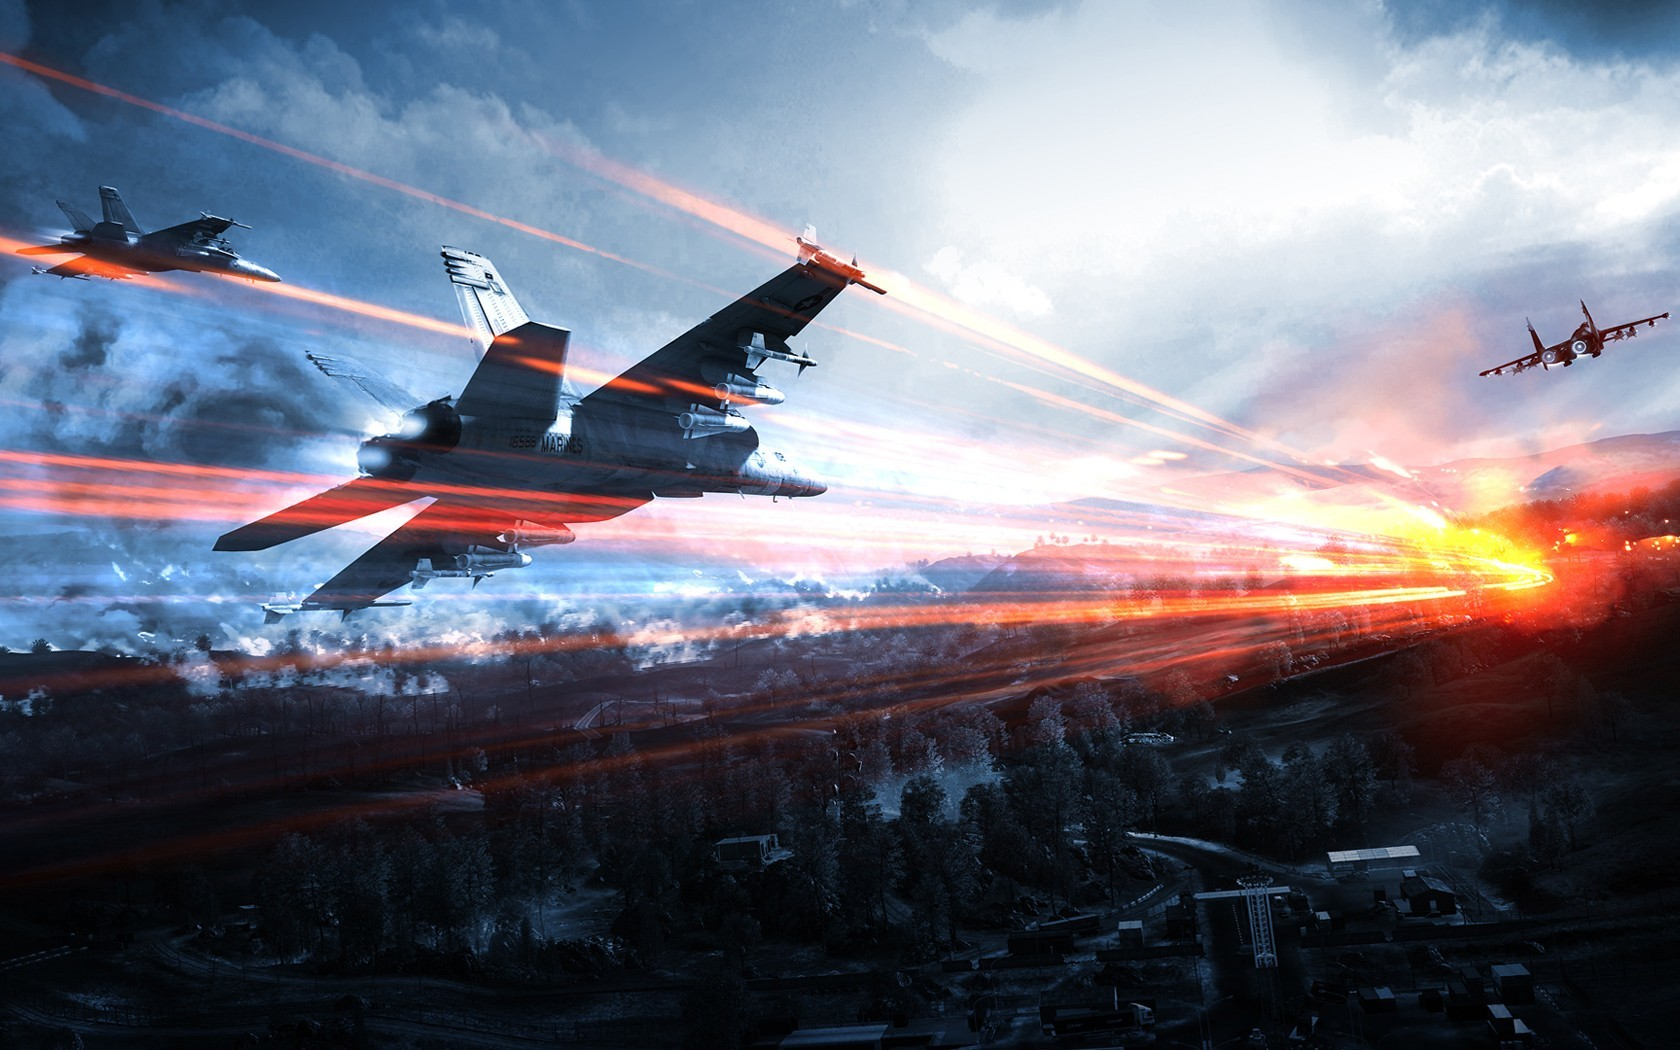 battlefield f-18 hornet jet HD Wallpaper